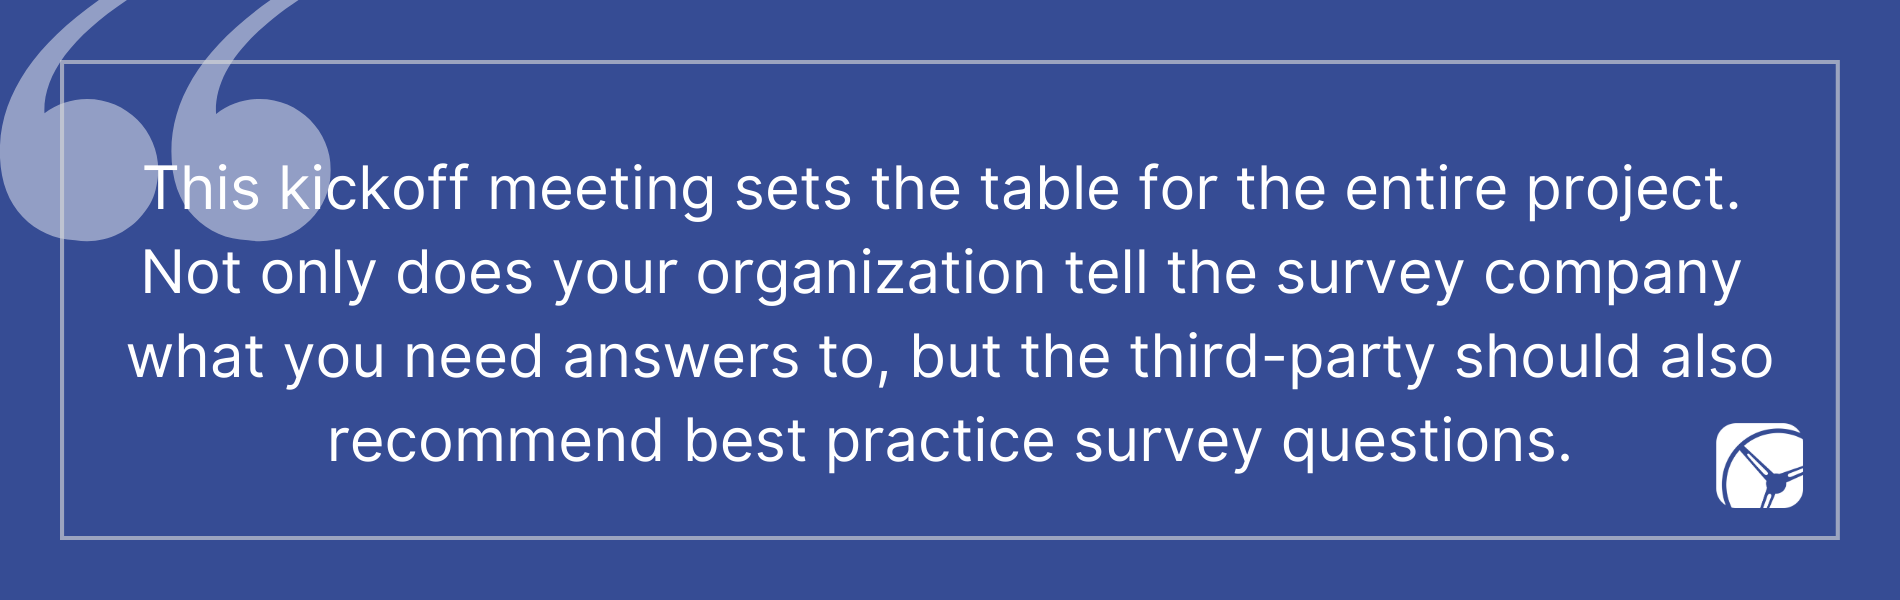 This kickoff meeting sets the table for the entire project.  Not only does your organization tell the survey company  what you need answers to, but the third-party should also recommend best practice survey questions.